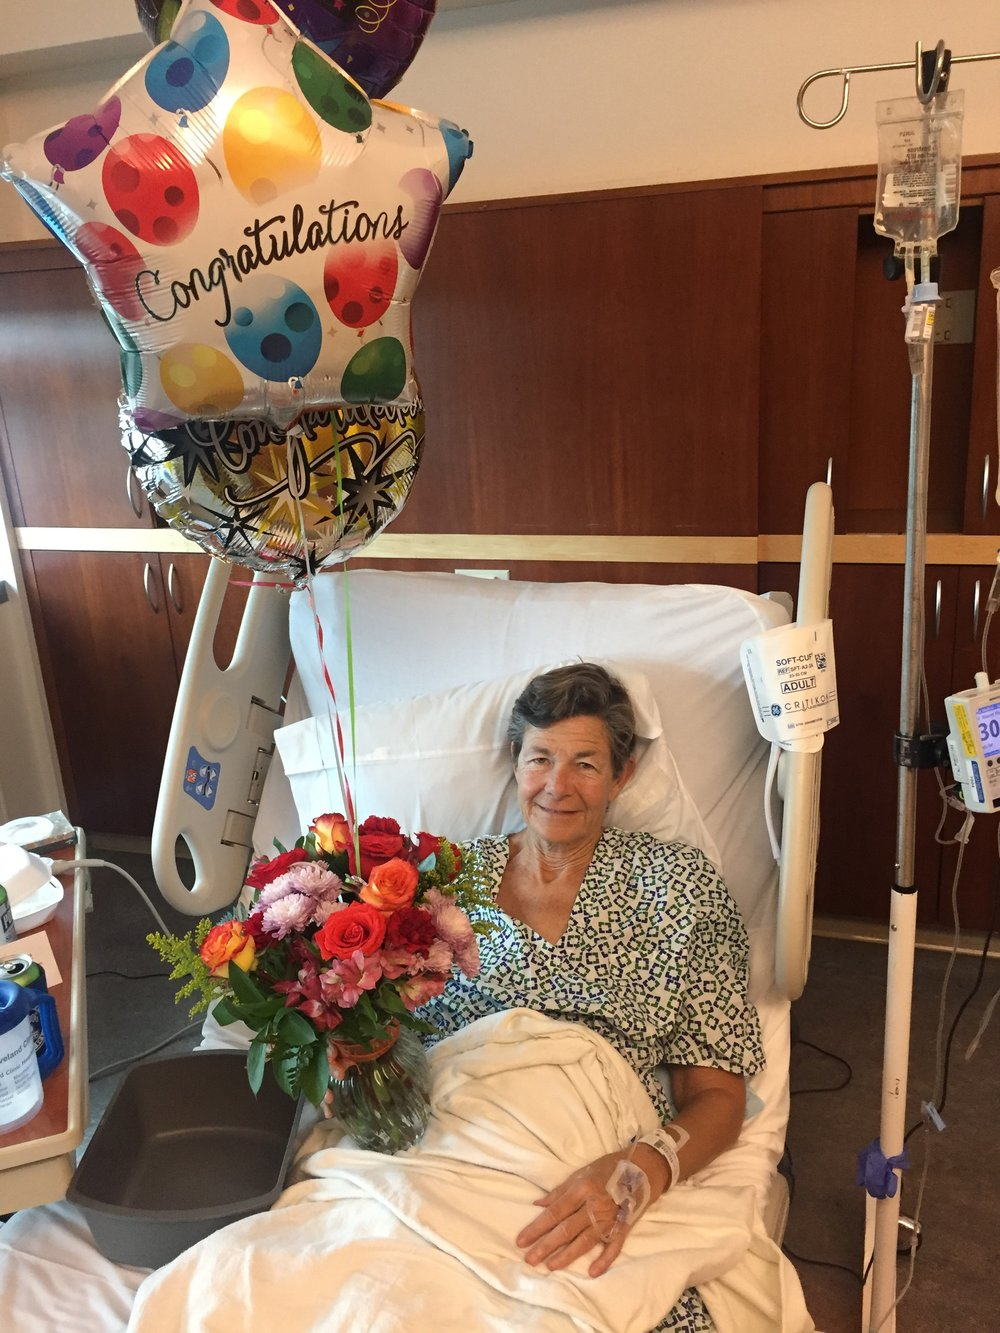 Betsy in Hospital after Non-Directed-Donor, Kidney Donation